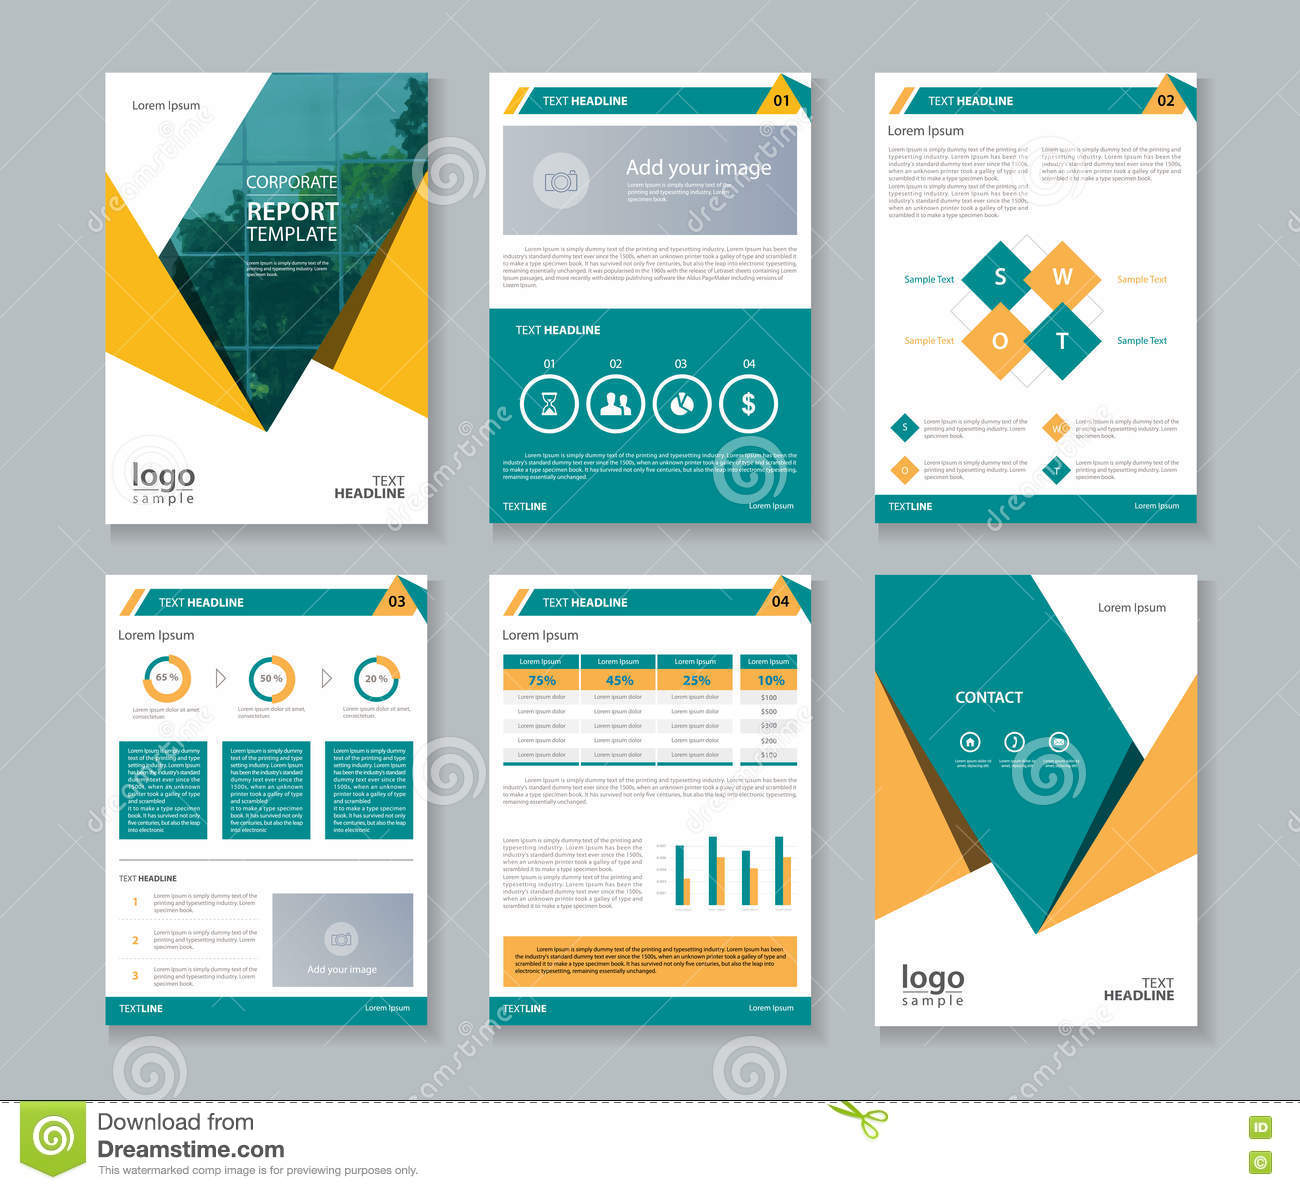 Business company profile report and brochure layout template stock download business company profile report and brochure layout template stock vector illustration of poster flashek Gallery